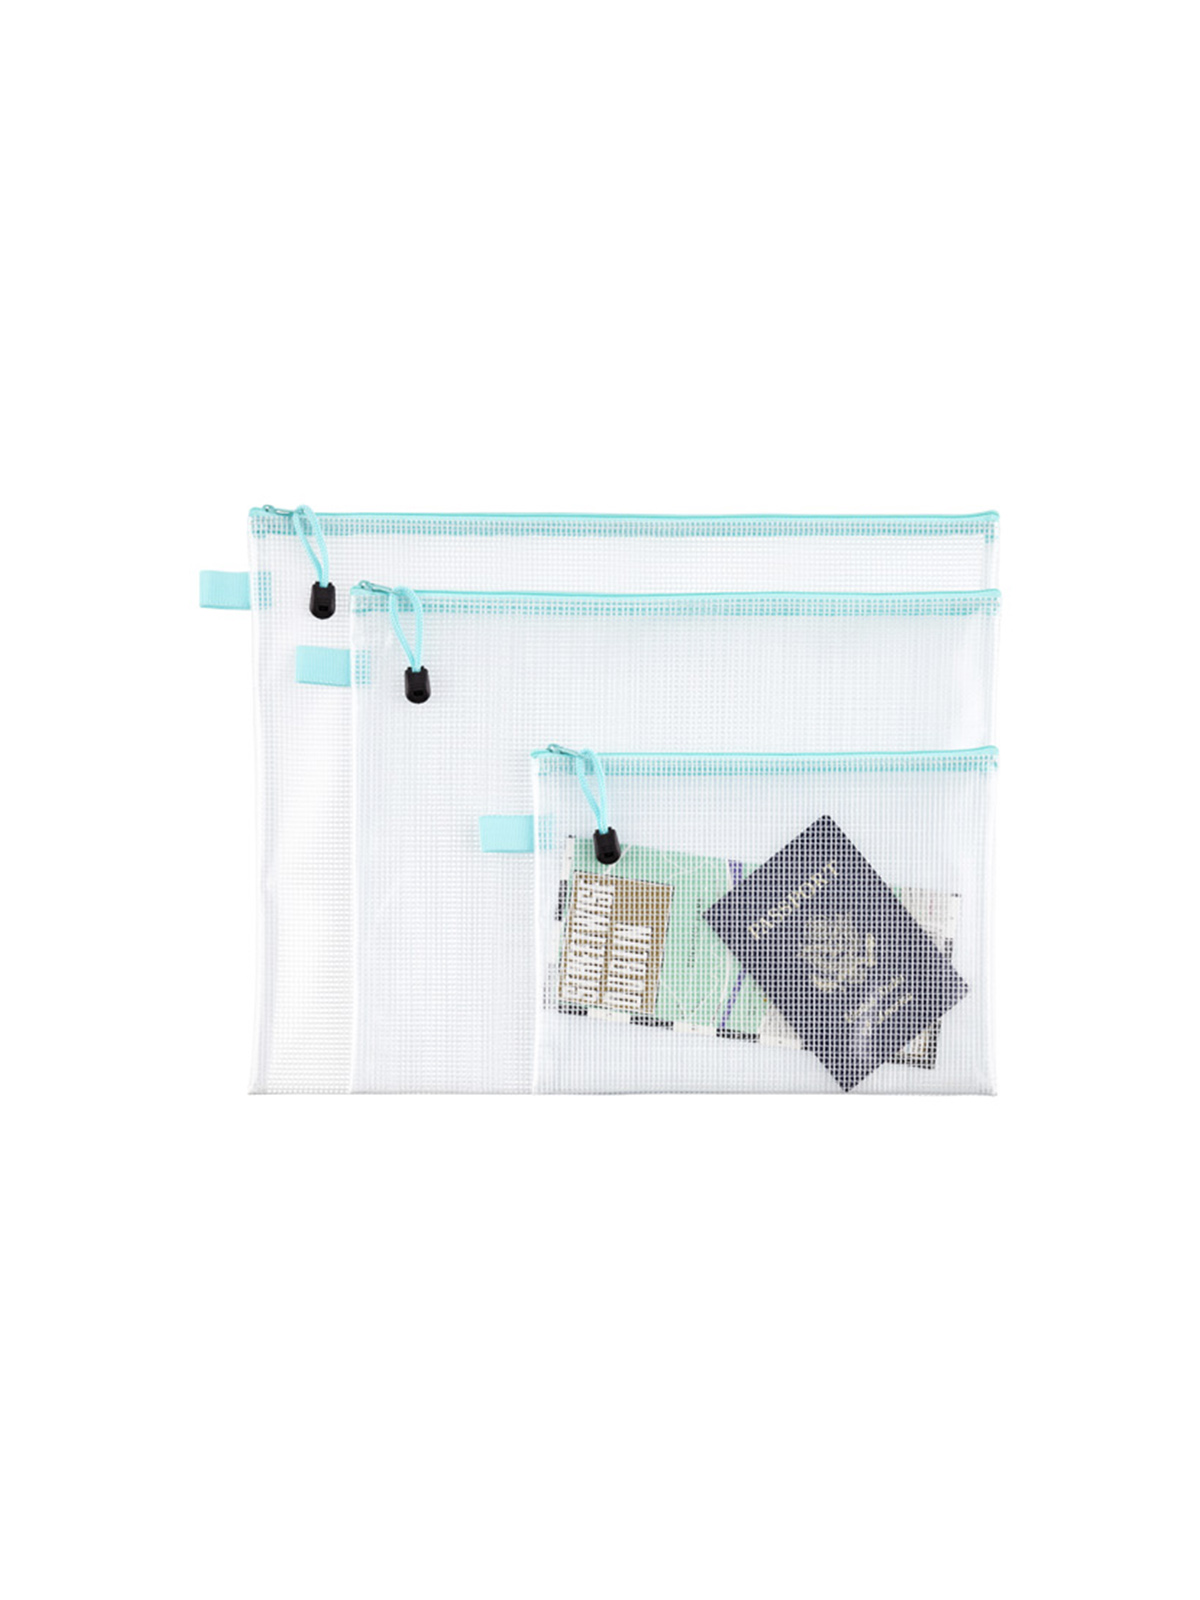 Best Container Store Organizers, Zip Pouches